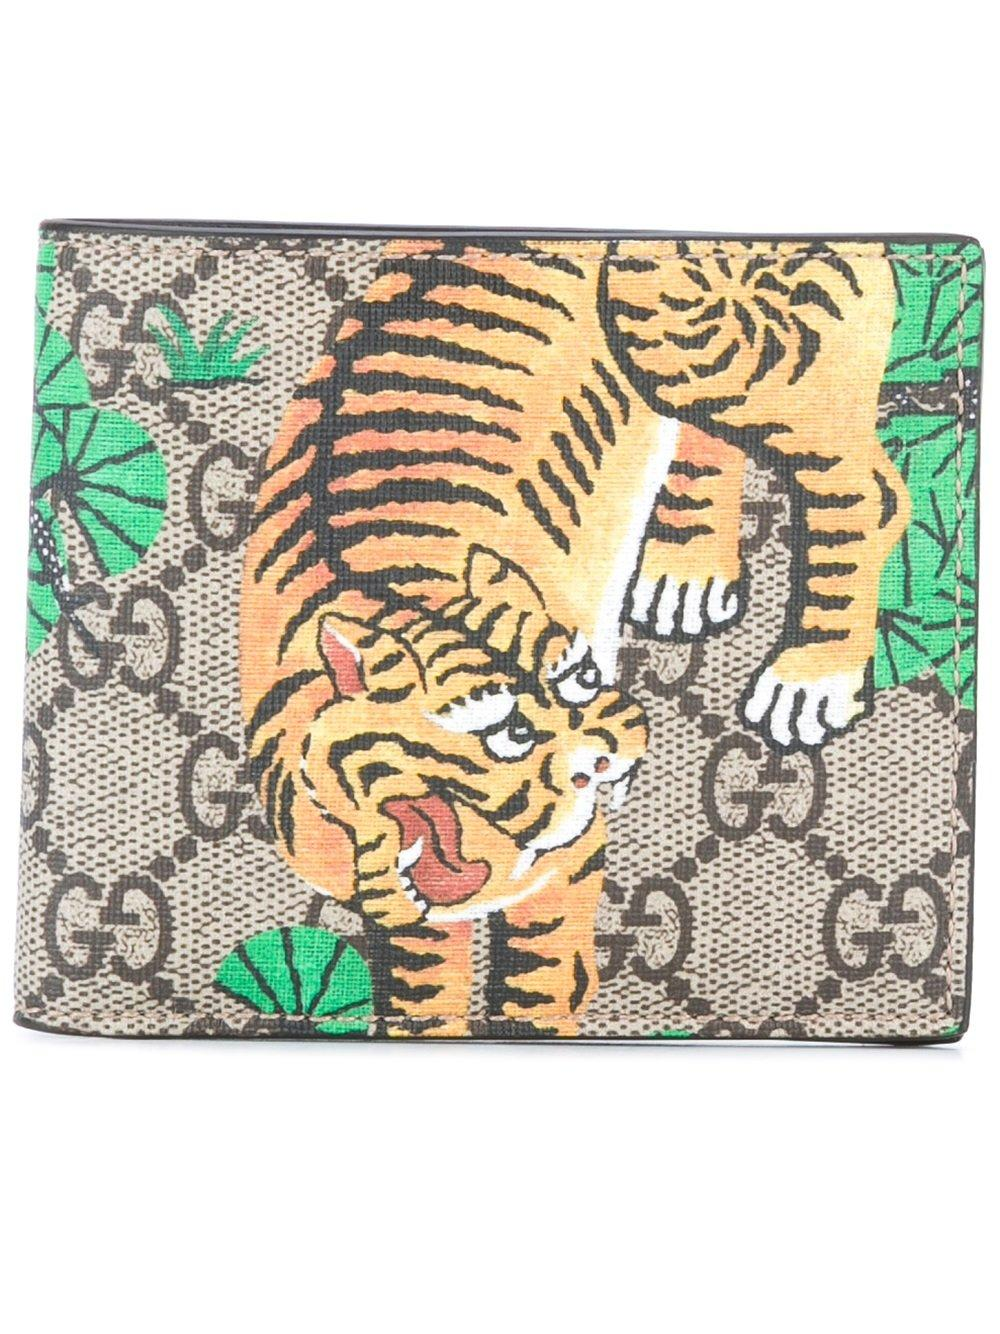 5effa7c0b5cc Gucci Gg Supreme Bengal Print Wallet in Brown for Men - Lyst